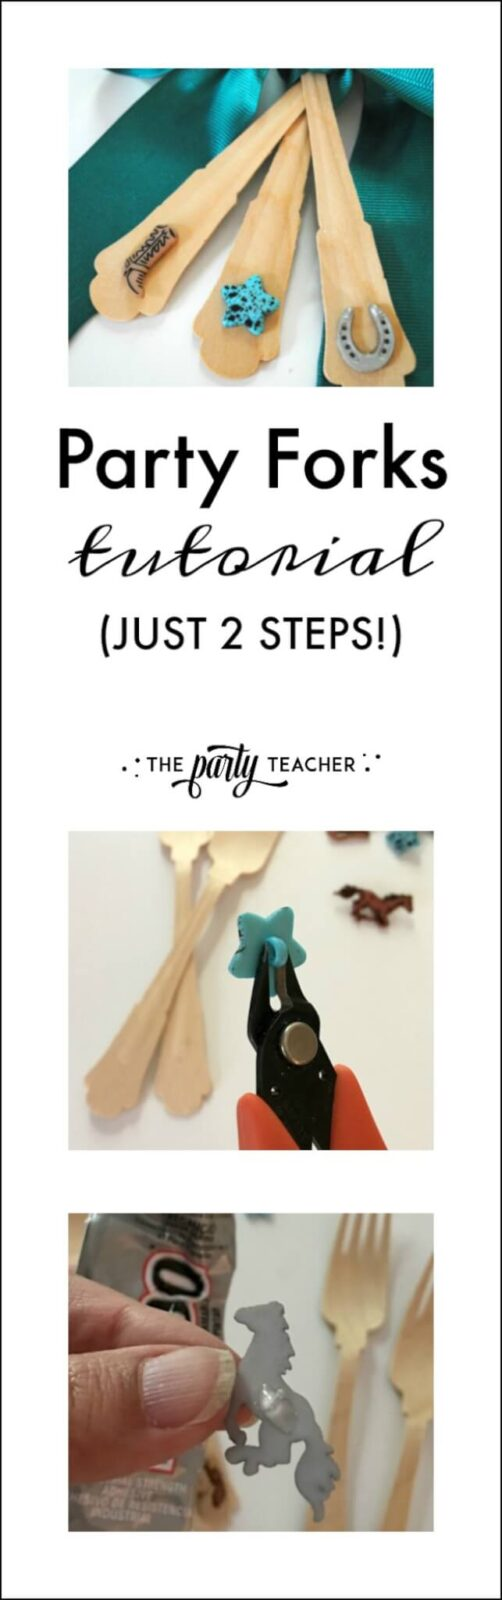 How to decorate party forks - just 2 steps - by The Party Teacher